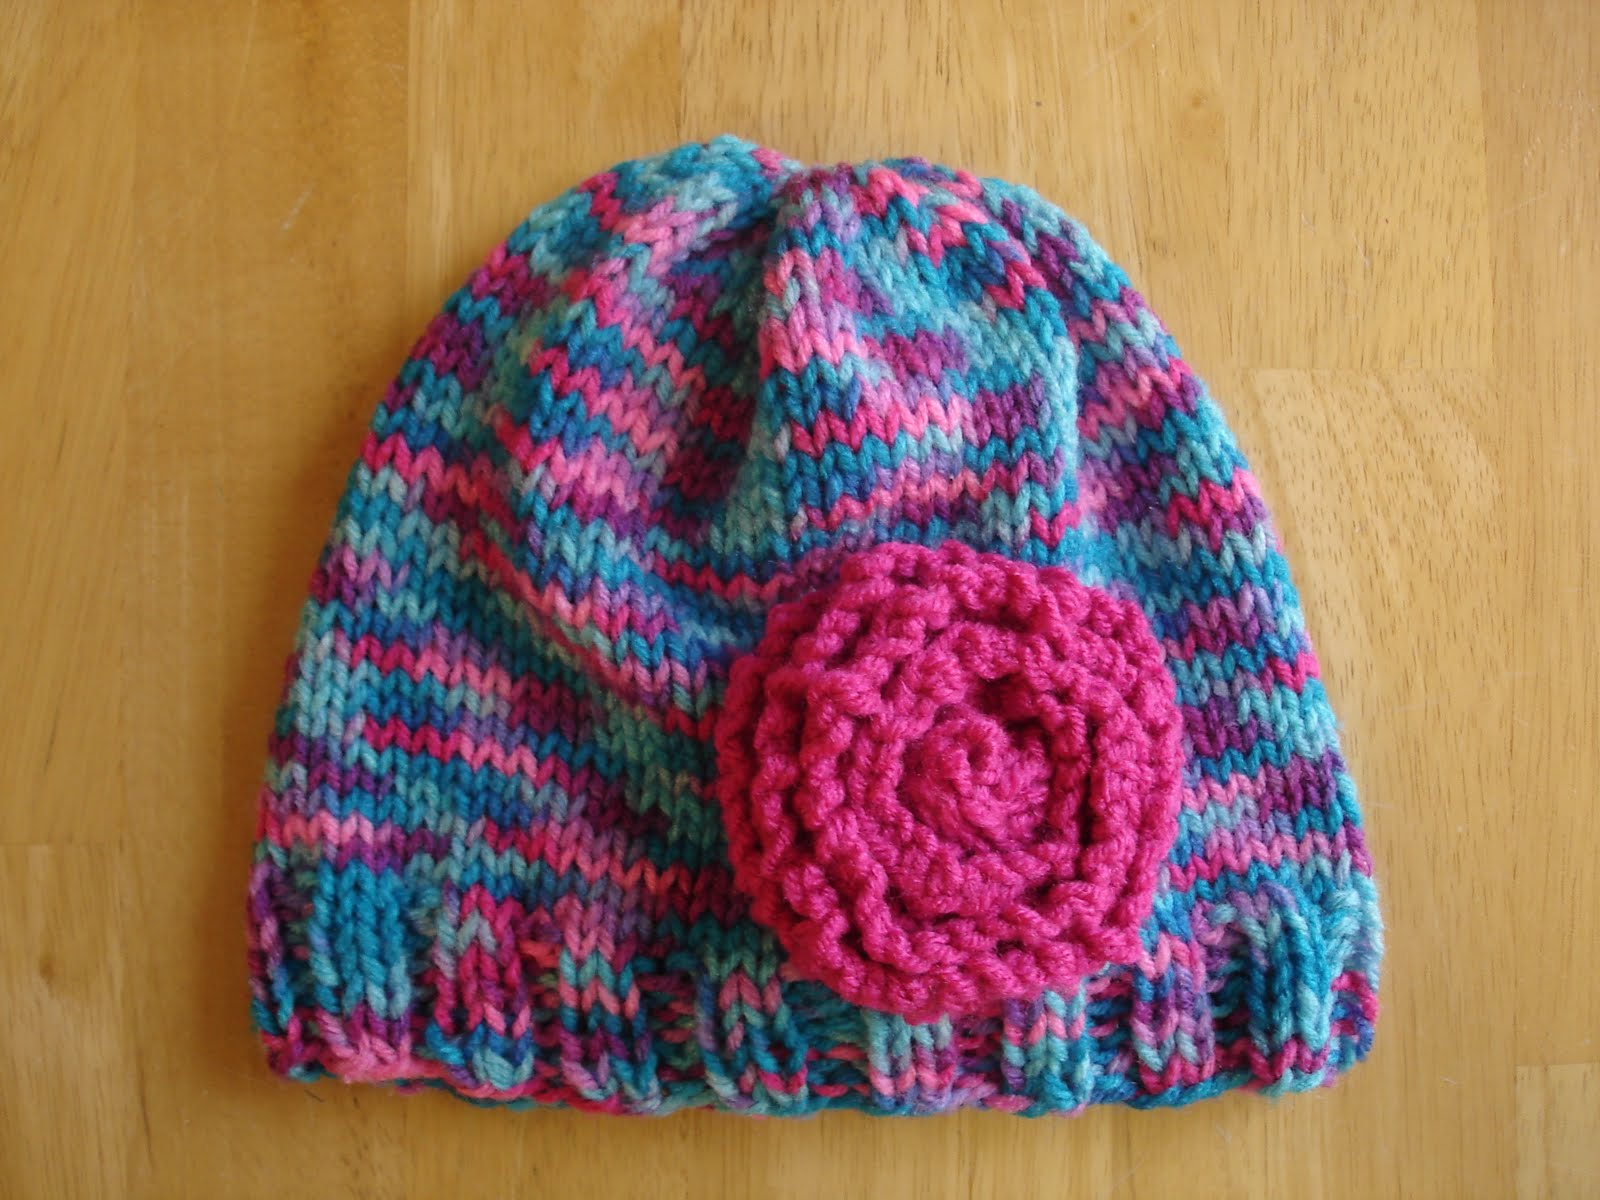 Knitting Patterns For Childrens Hats Free : Fiber Flux: Free Knitting Pattern...Very Violet Newborn Hat!